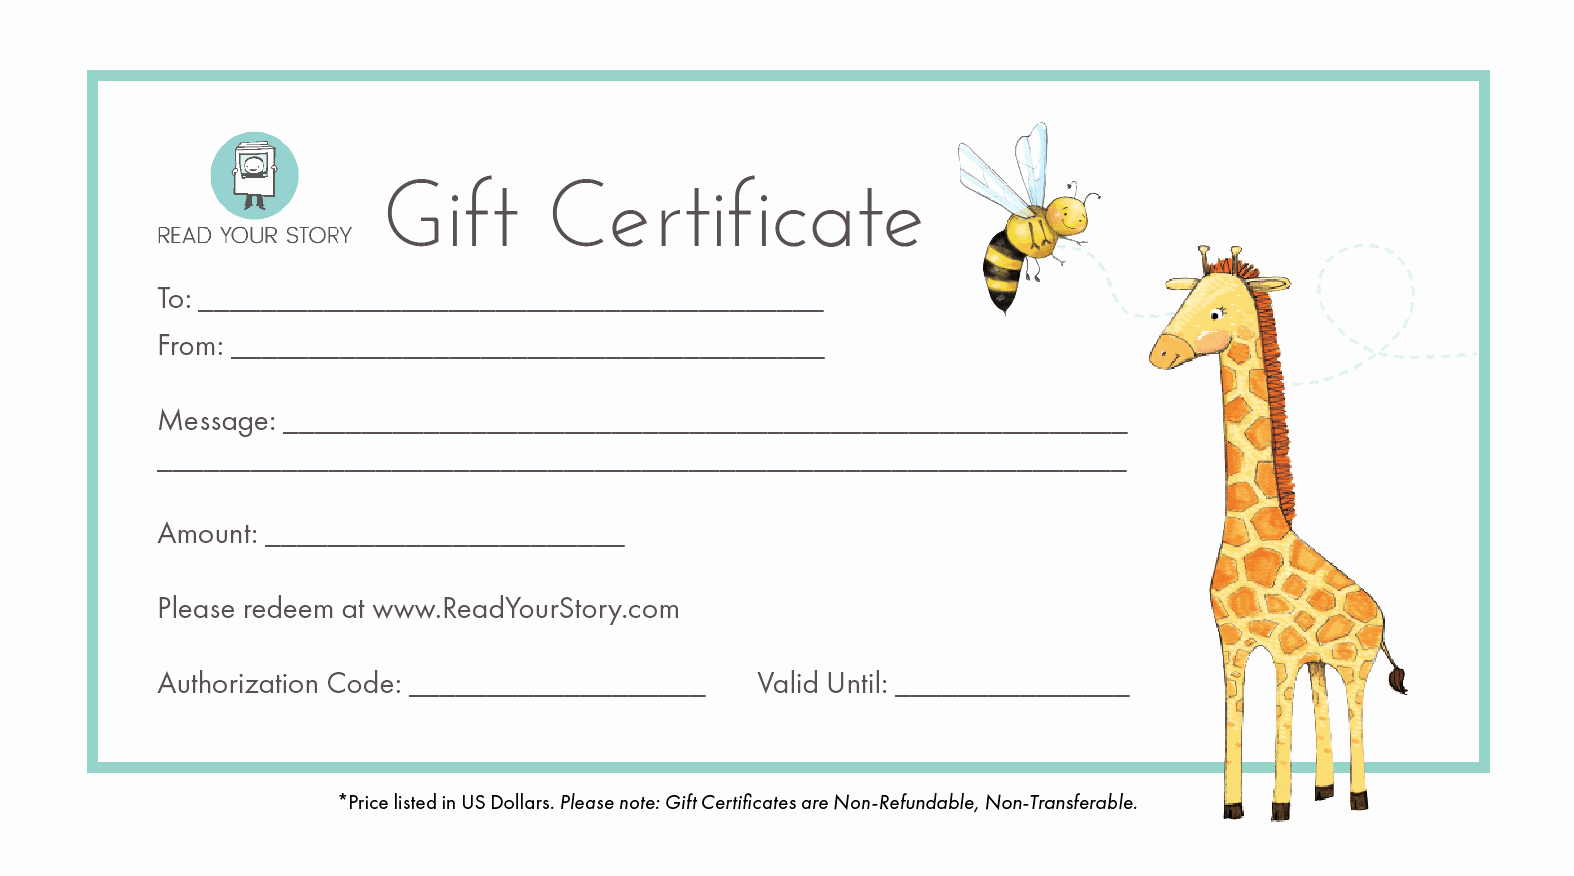 Book Fair Gift Certificate Template Lovely Gift Certificate for Personalized Books